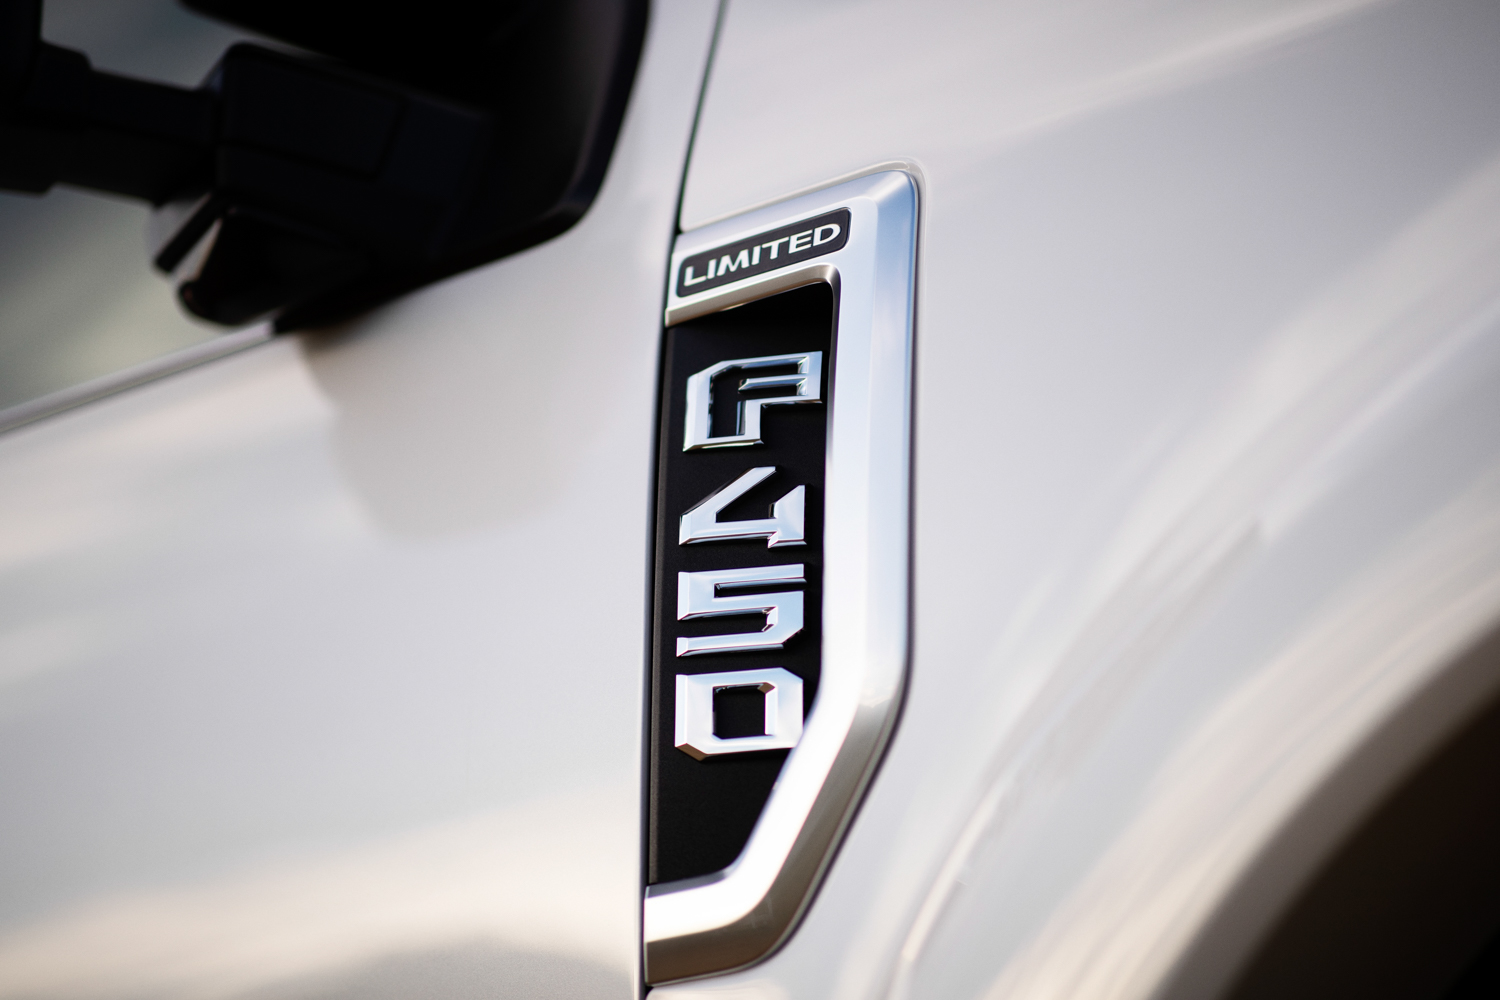 2020 Ford F-450 Super Duty badge detail